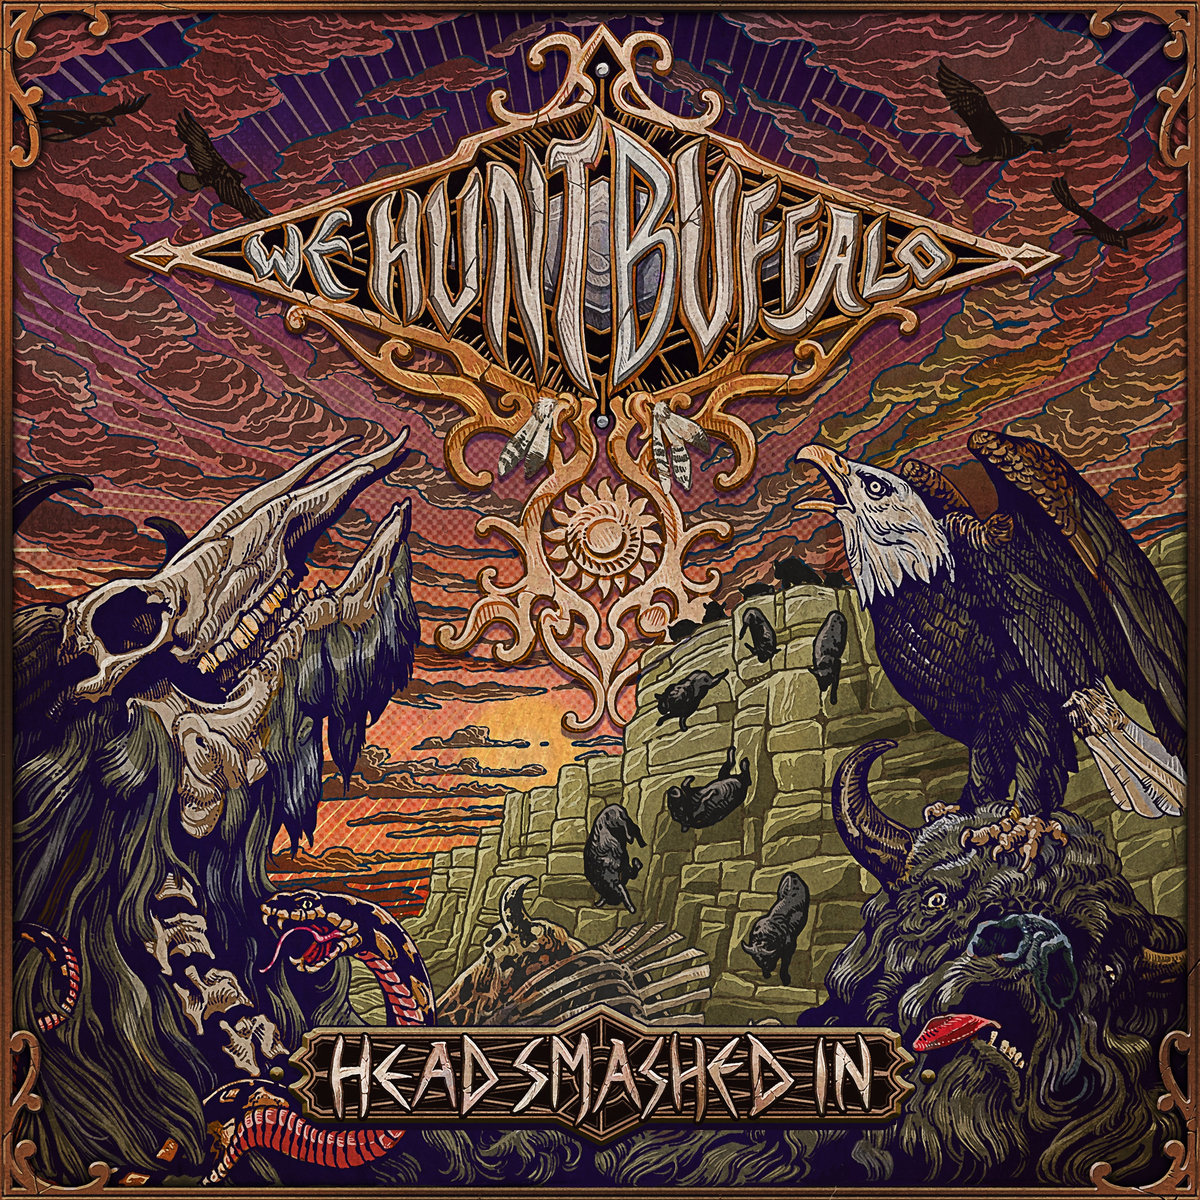 Head Smashed In_Album Cover